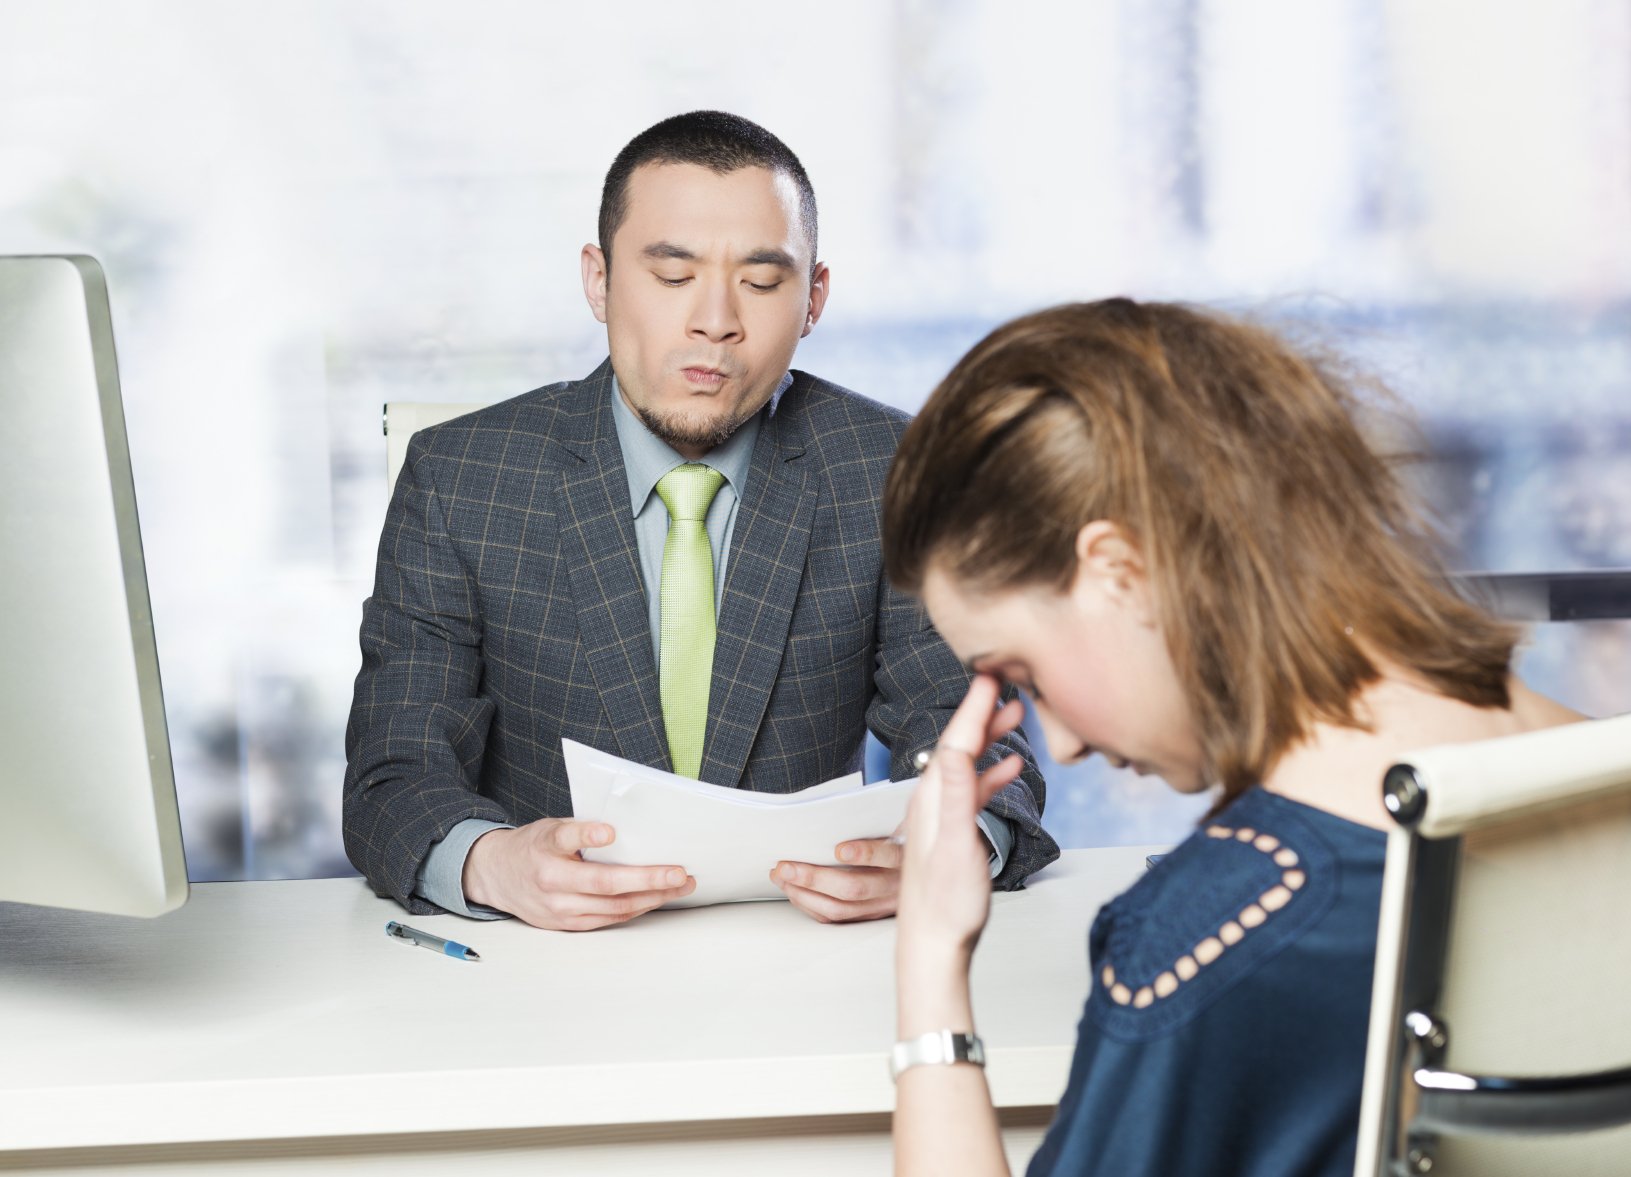 15 reasons why people fail at job interviews